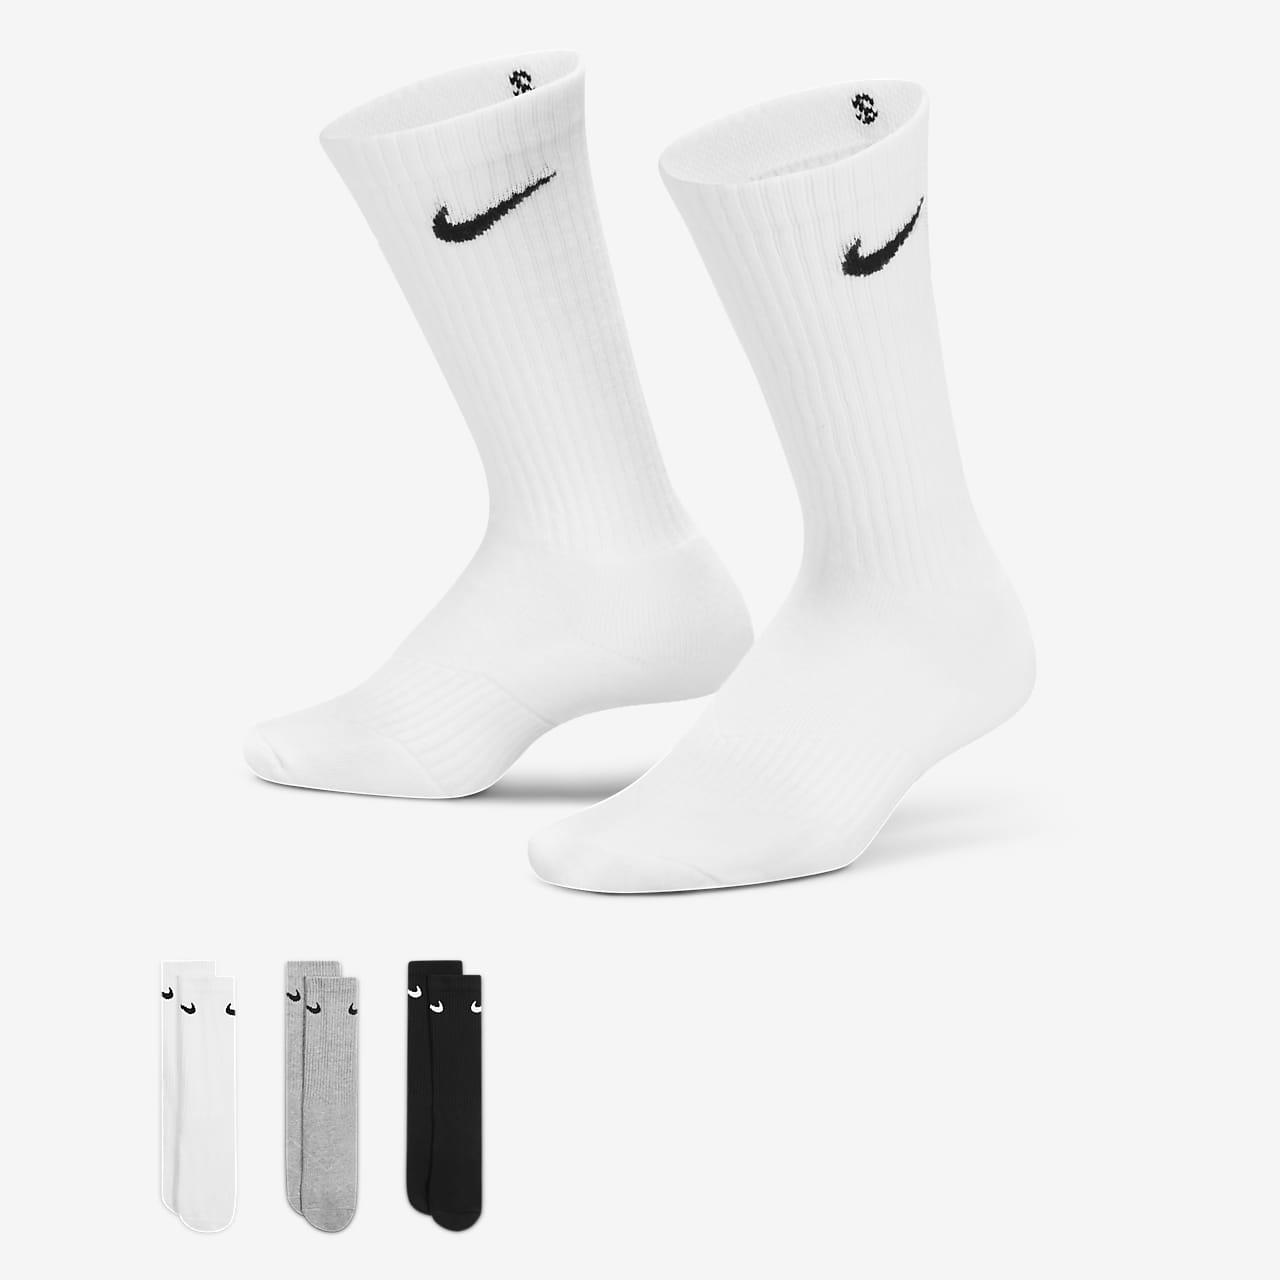 Nike Performance Crew Older Kids' Socks (3 Pair)